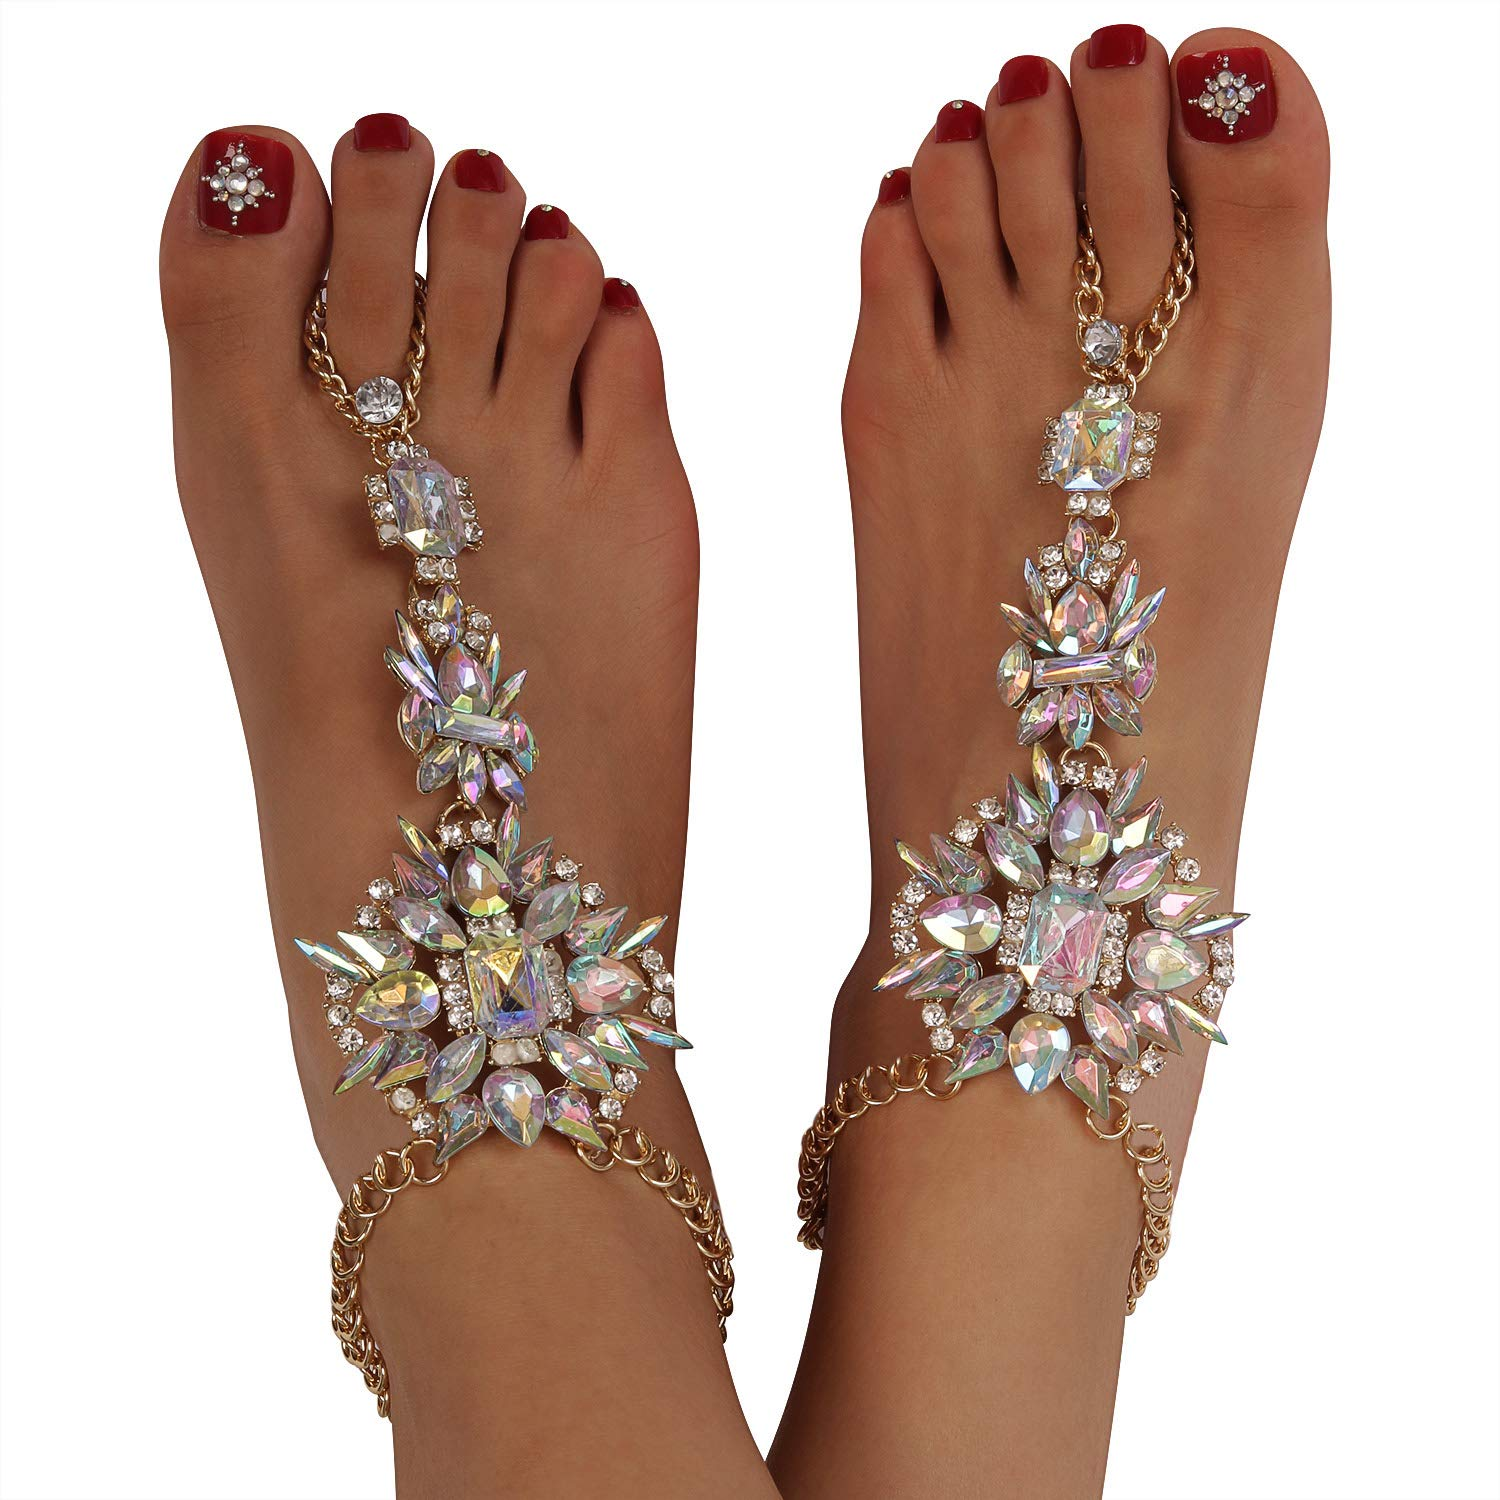 6988e1edc5a01 Holylove 1 Pair 2 Color Crystal Foot Jewelry for Women Barefoot Sandals  Beach Wedding with Gift Box